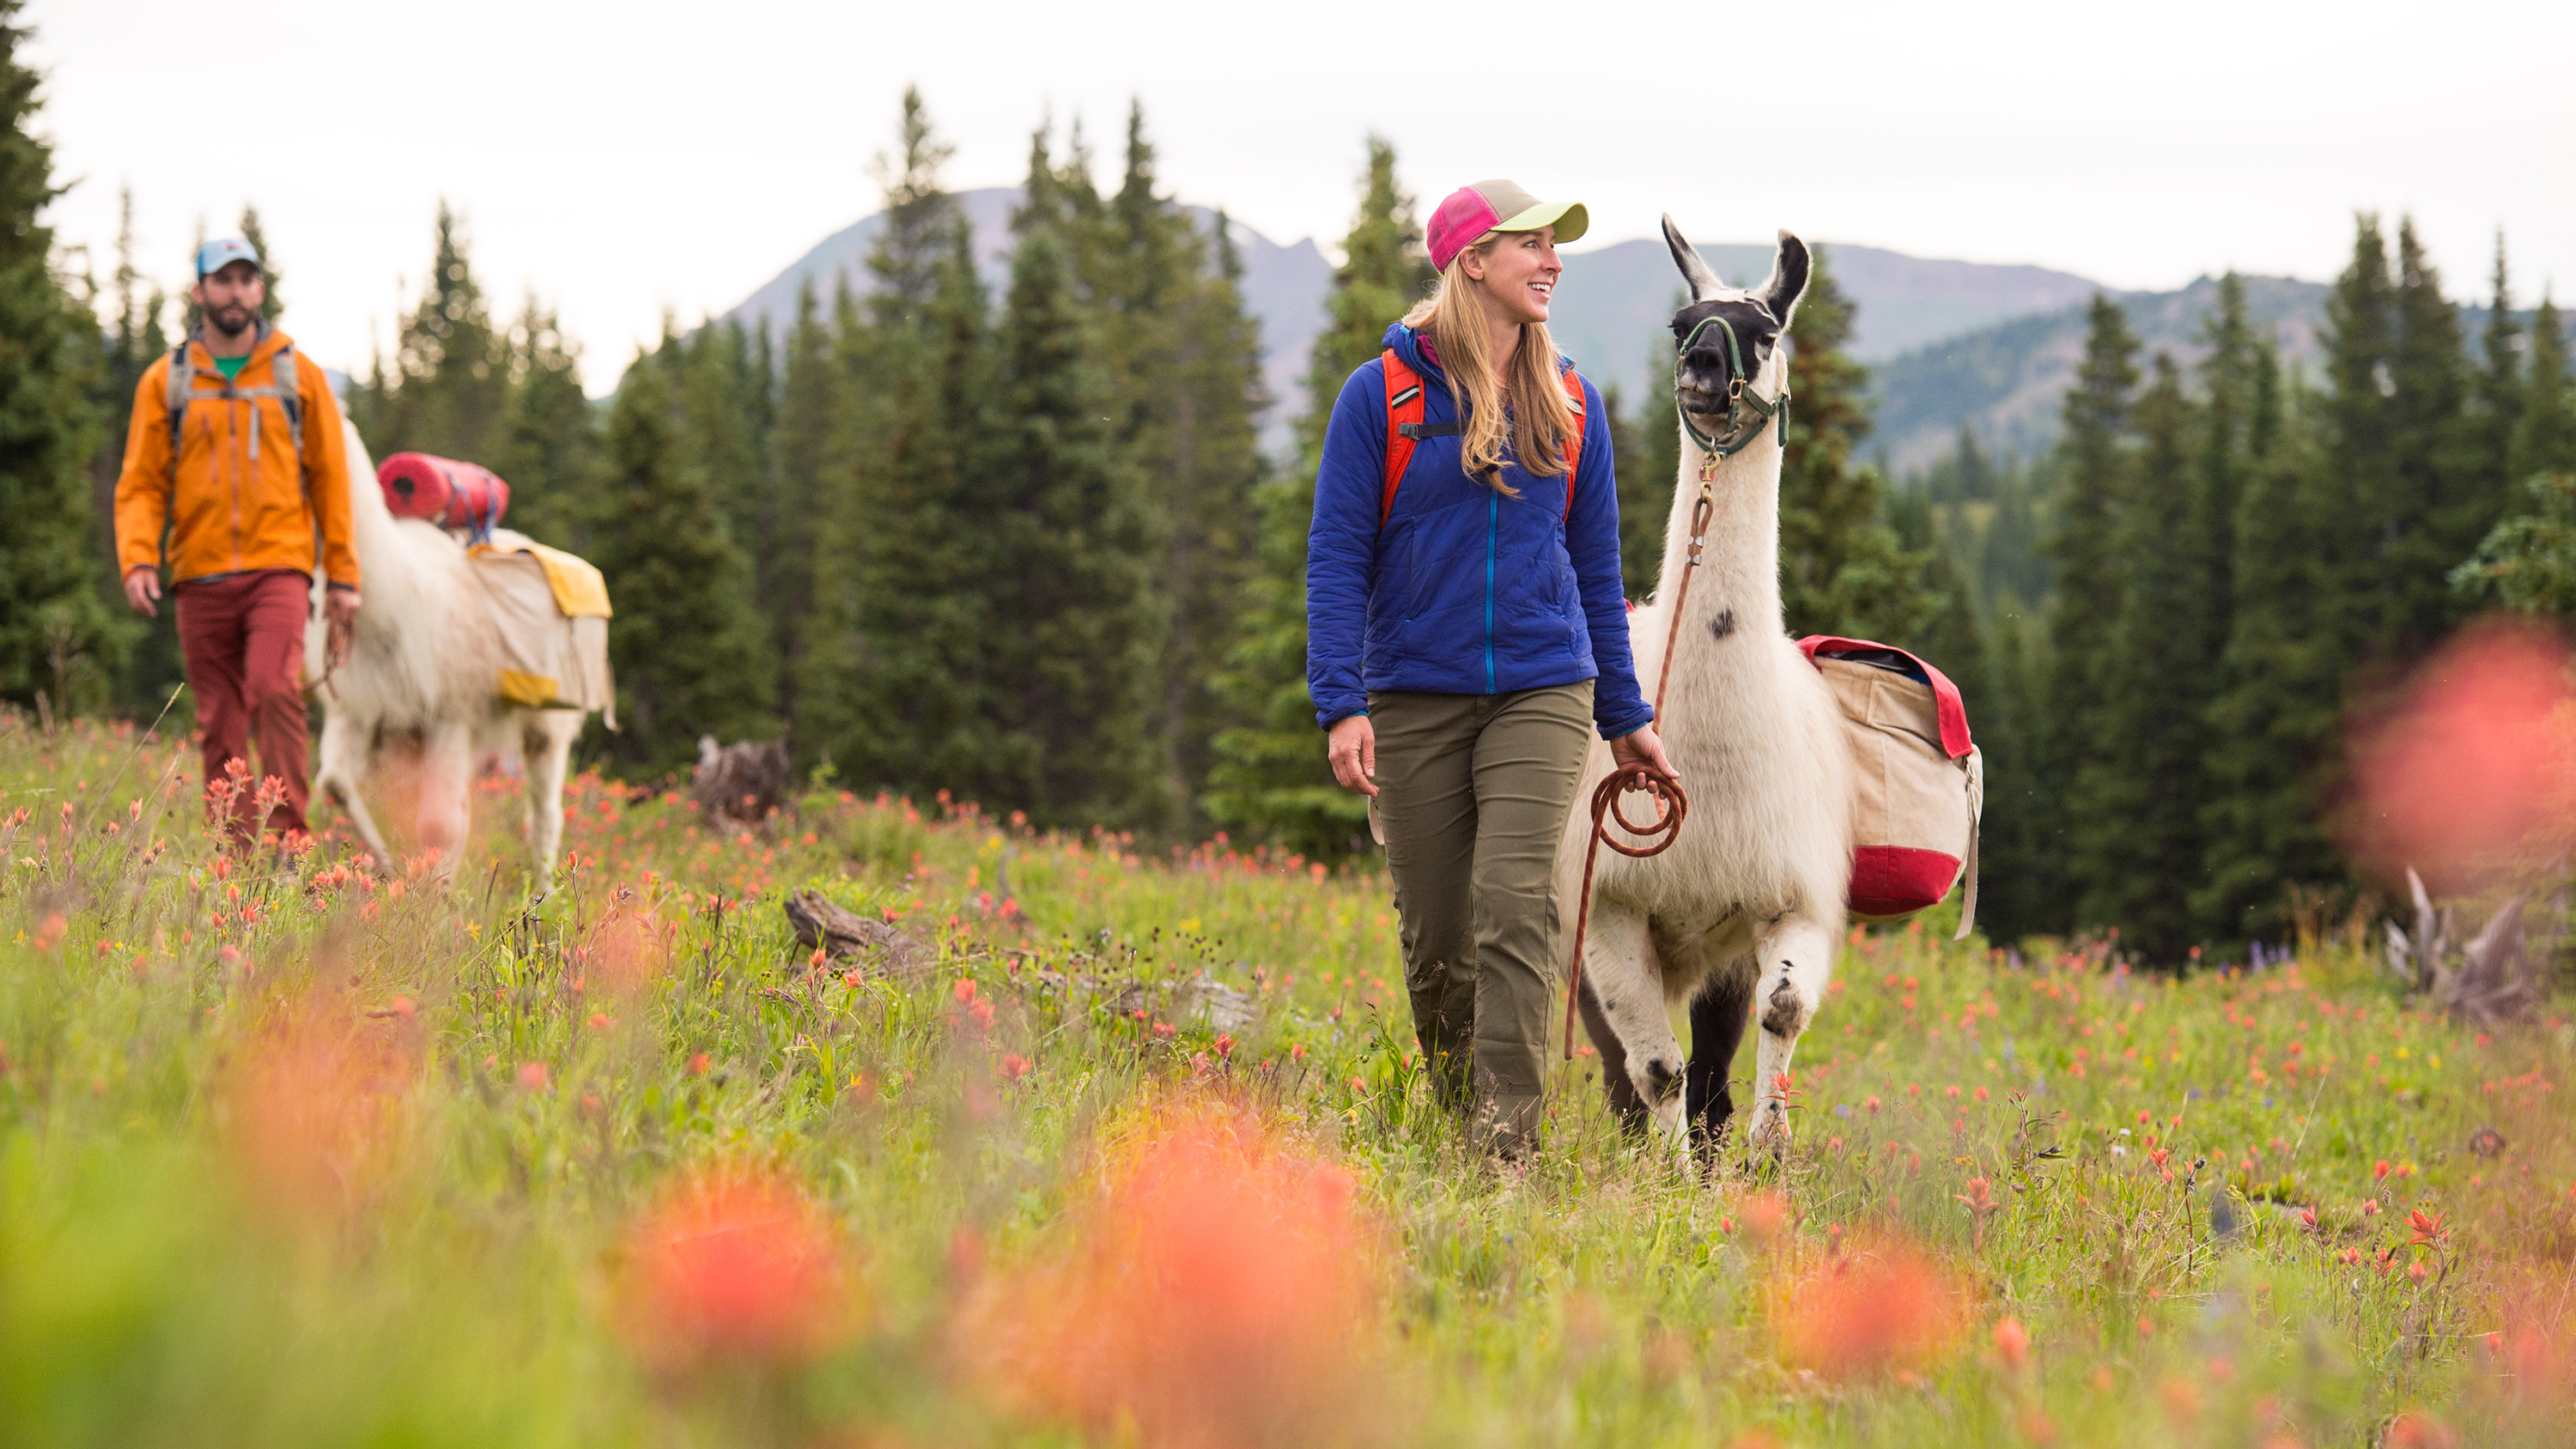 Vail, Colorado: How to enjoy a vacation here year-round | CNN Travel